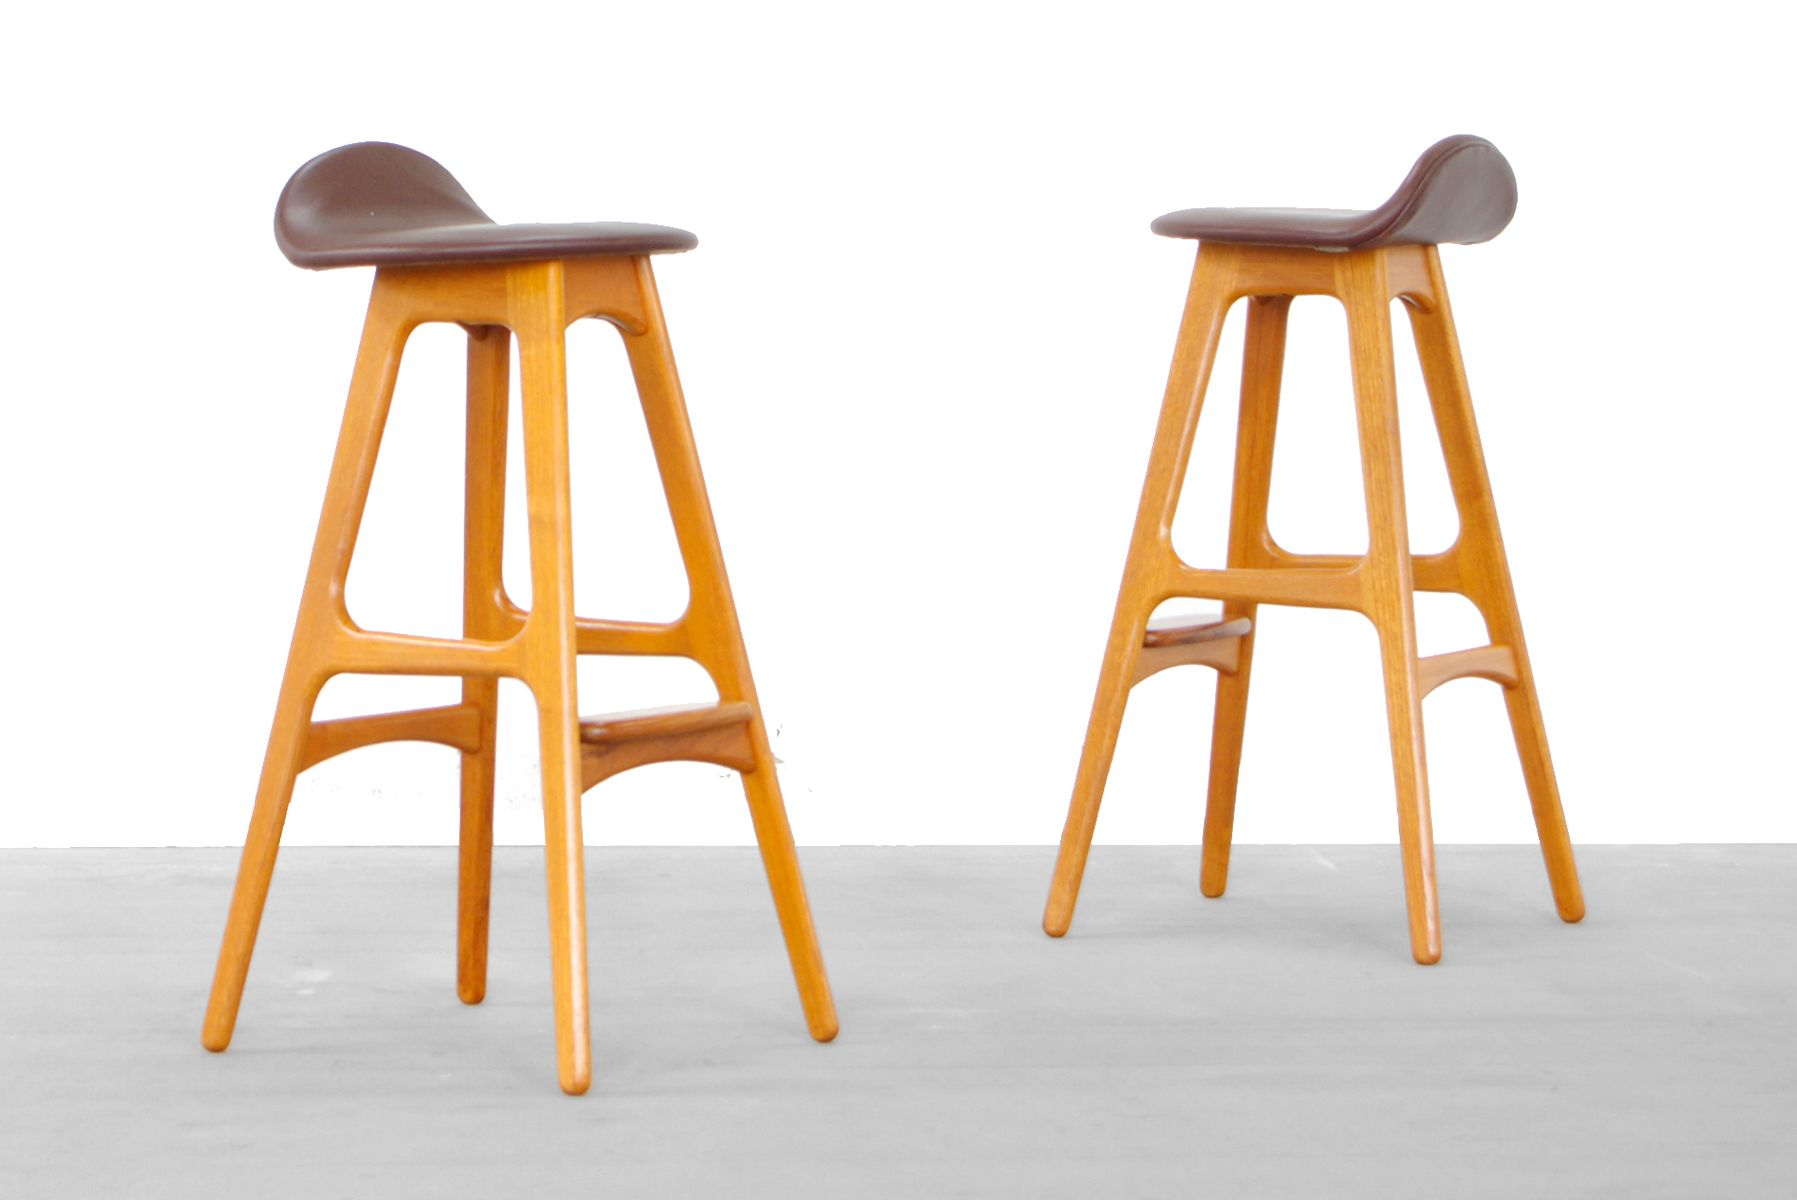 Mid Century Bar Stools by Erik Buck for Odense  : mid century bar stools by erik buck for odense maskinsnedker 1964 set of 2 from www.pamono.co.uk size 1797 x 1200 jpeg 79kB